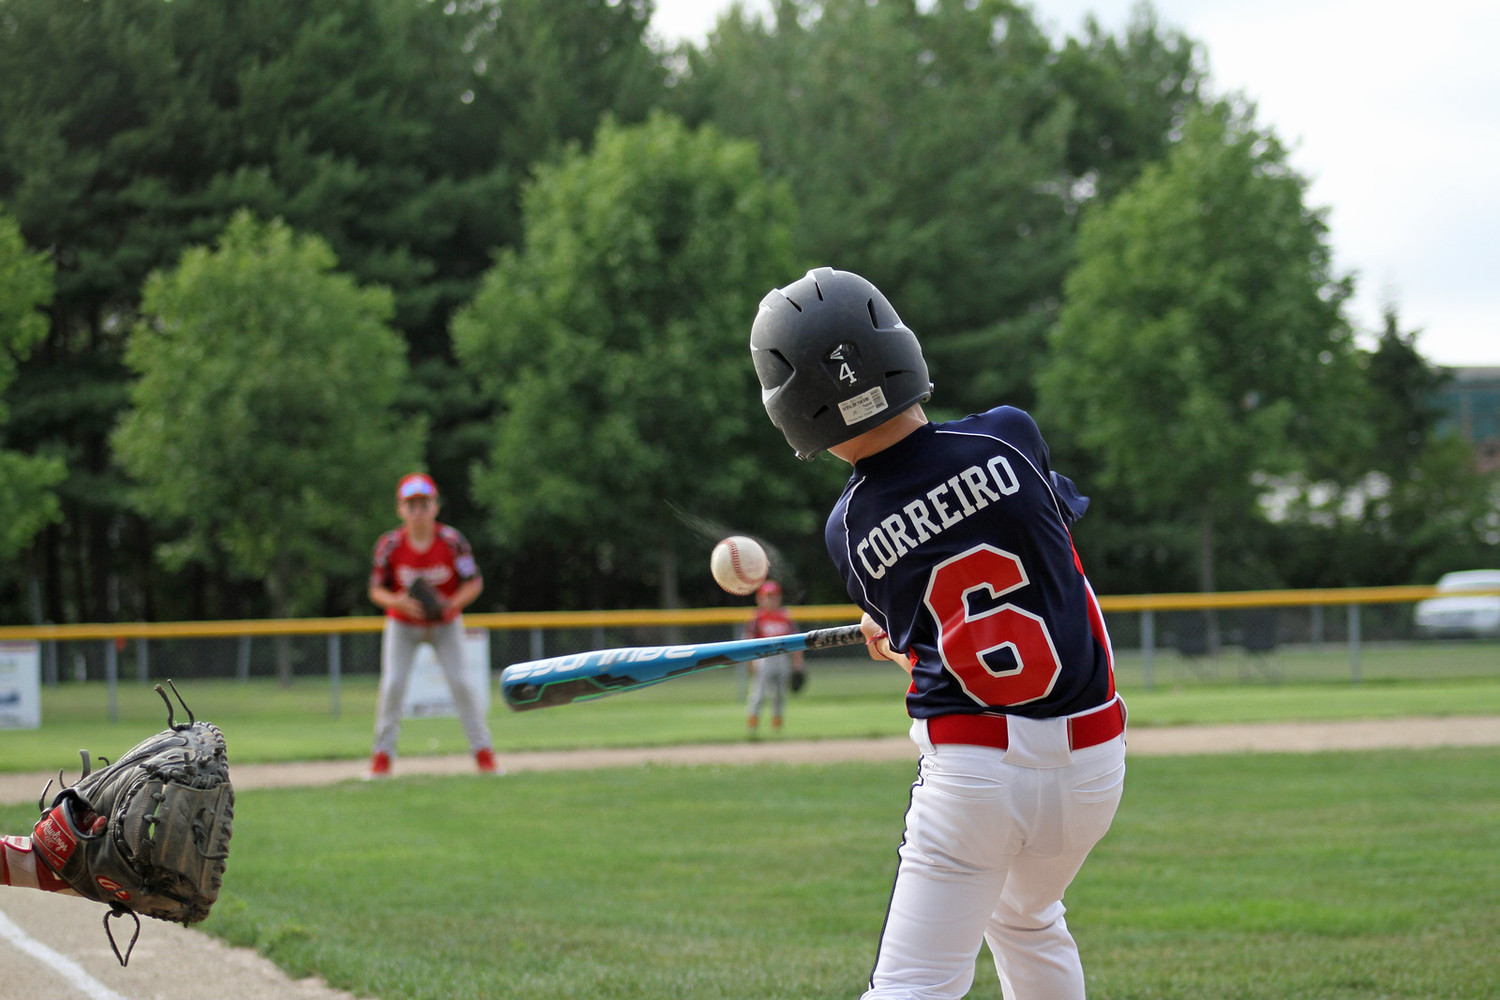 Max Correiro of Rumford at bat. Photos by Tyler Saunders Maxwell.